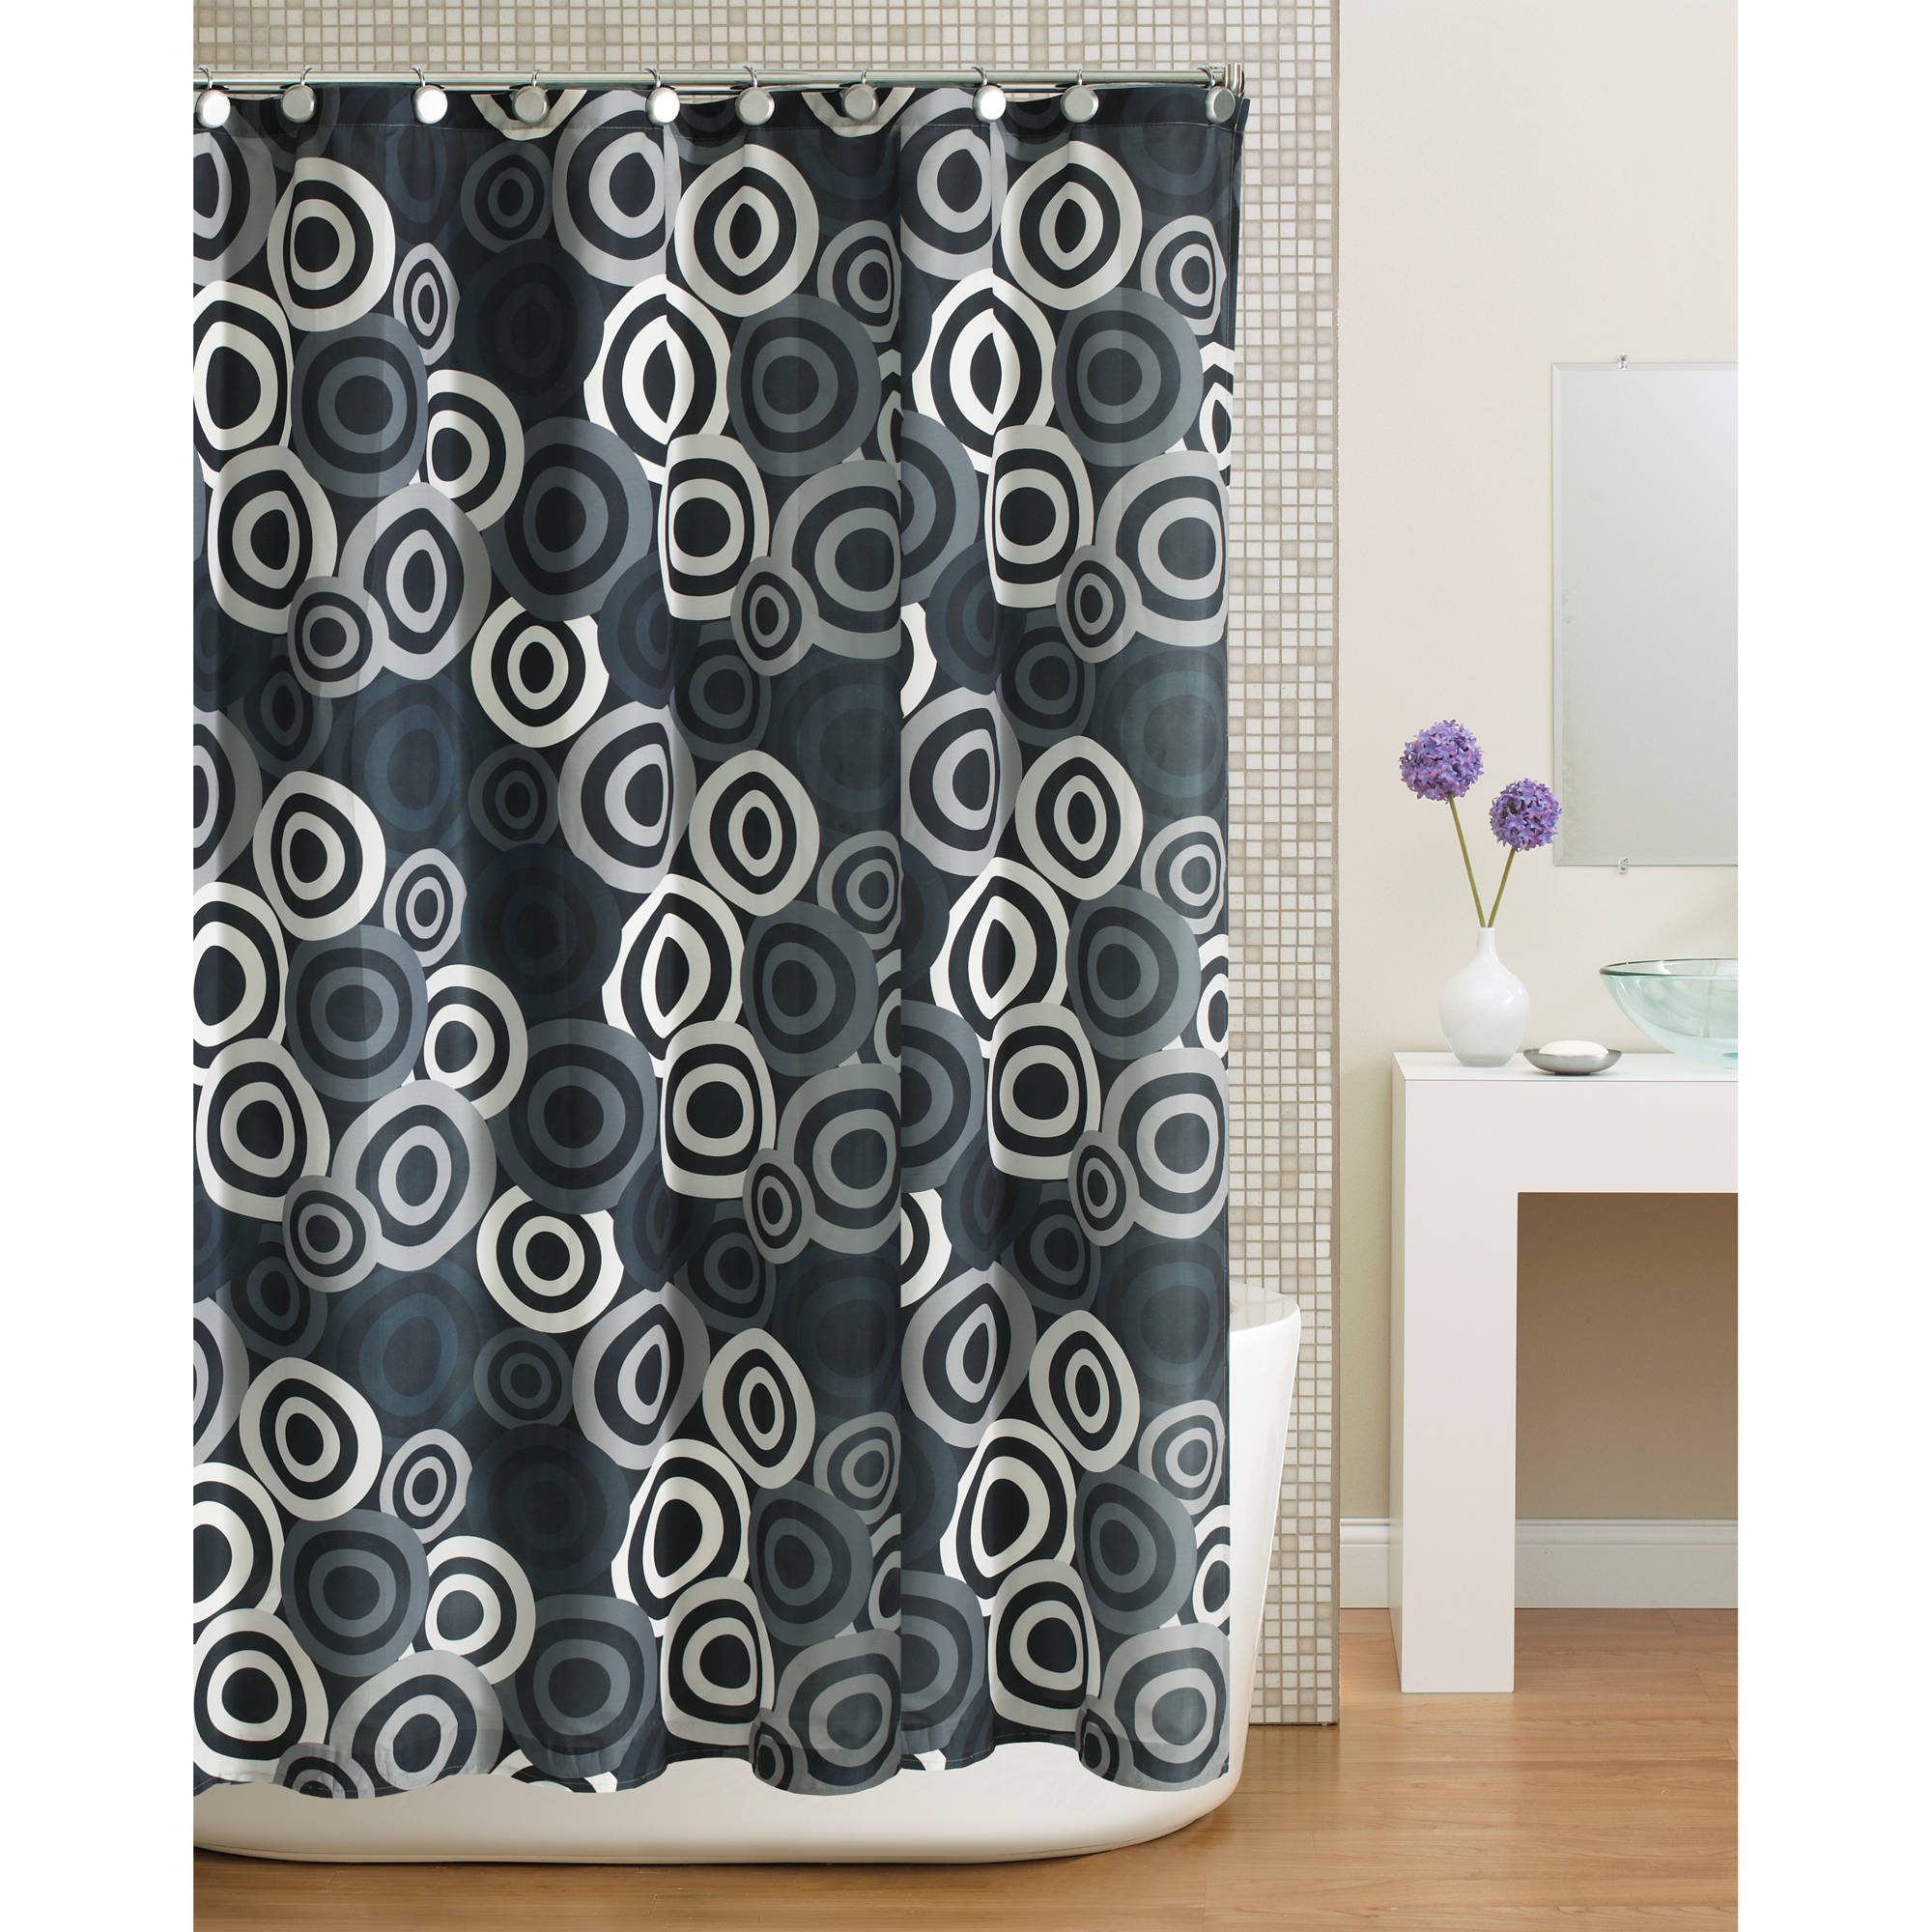 Home Trends Circles Shower Curtain